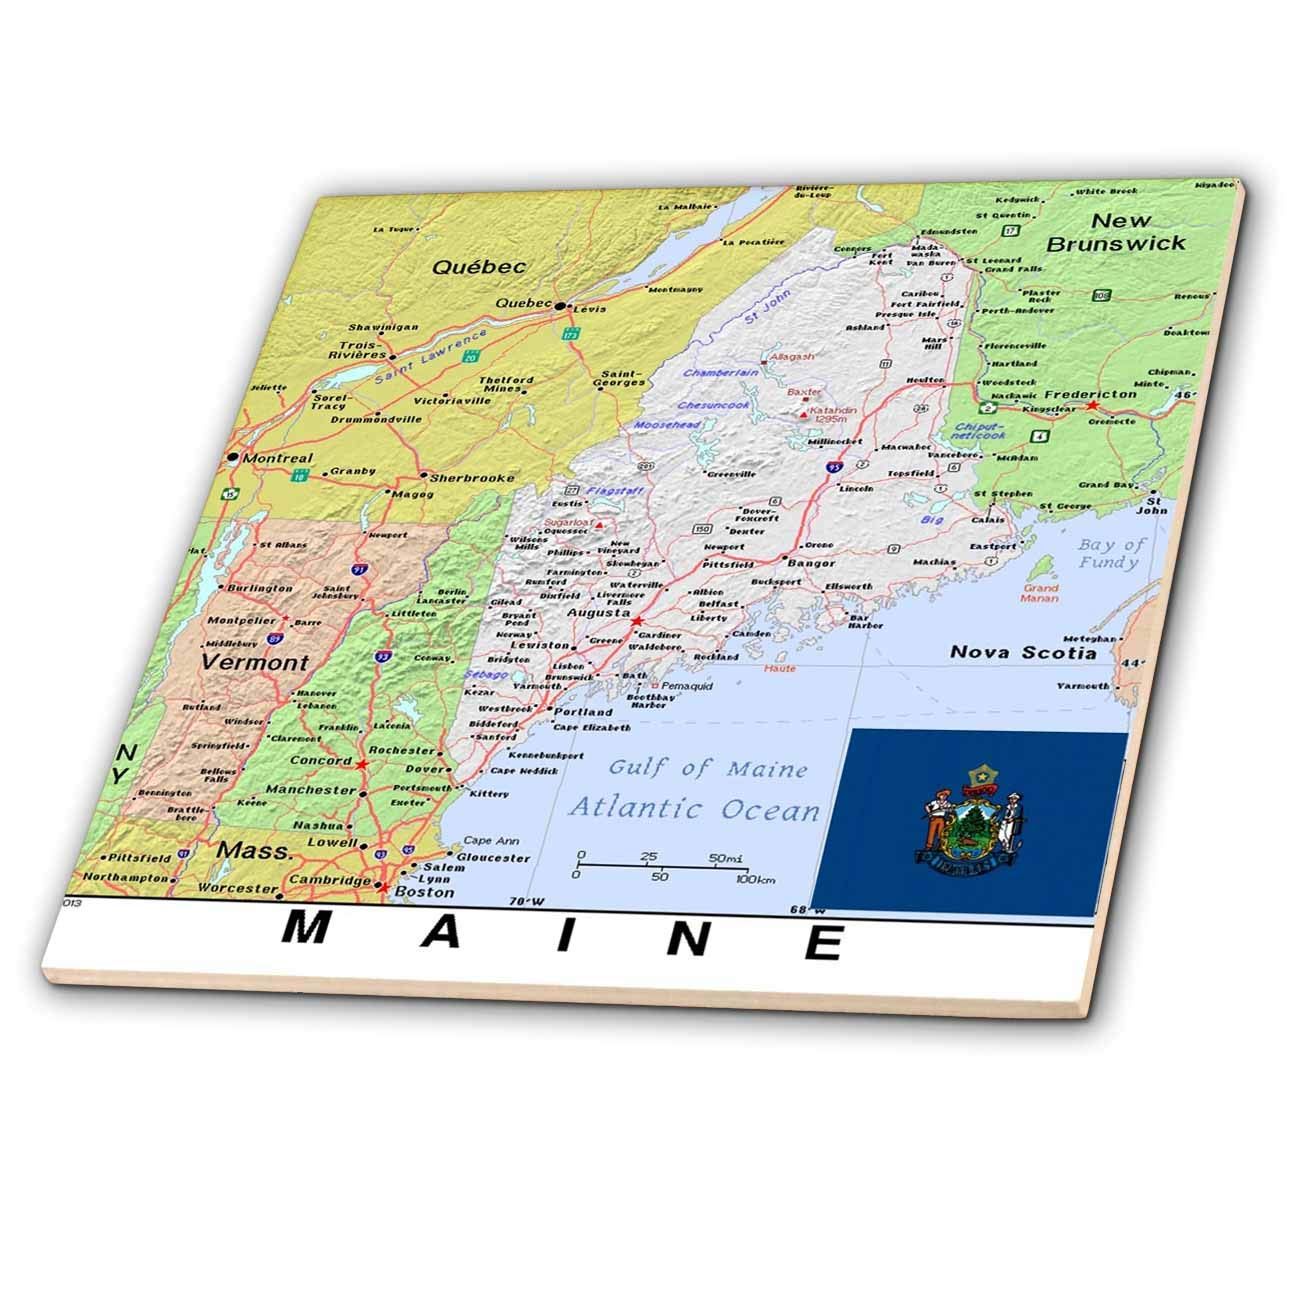 Amazon.com: 3dRose Lens Art by Florene - Topo Maps, Flags of ... on maine mountains, maine demographic map, maine gps map, maine state population map, maine zoning map, maine campus map, maine and surrounding states, maine geologic map, maine utility map, maine penobscot bay island map, maine land cover map, moose in maine map, south coast of maine map, maine dirigo high school, maine physical map, maine property map, maine elevation map, maine vegetation map, maine relief map, swift river maine gold map,